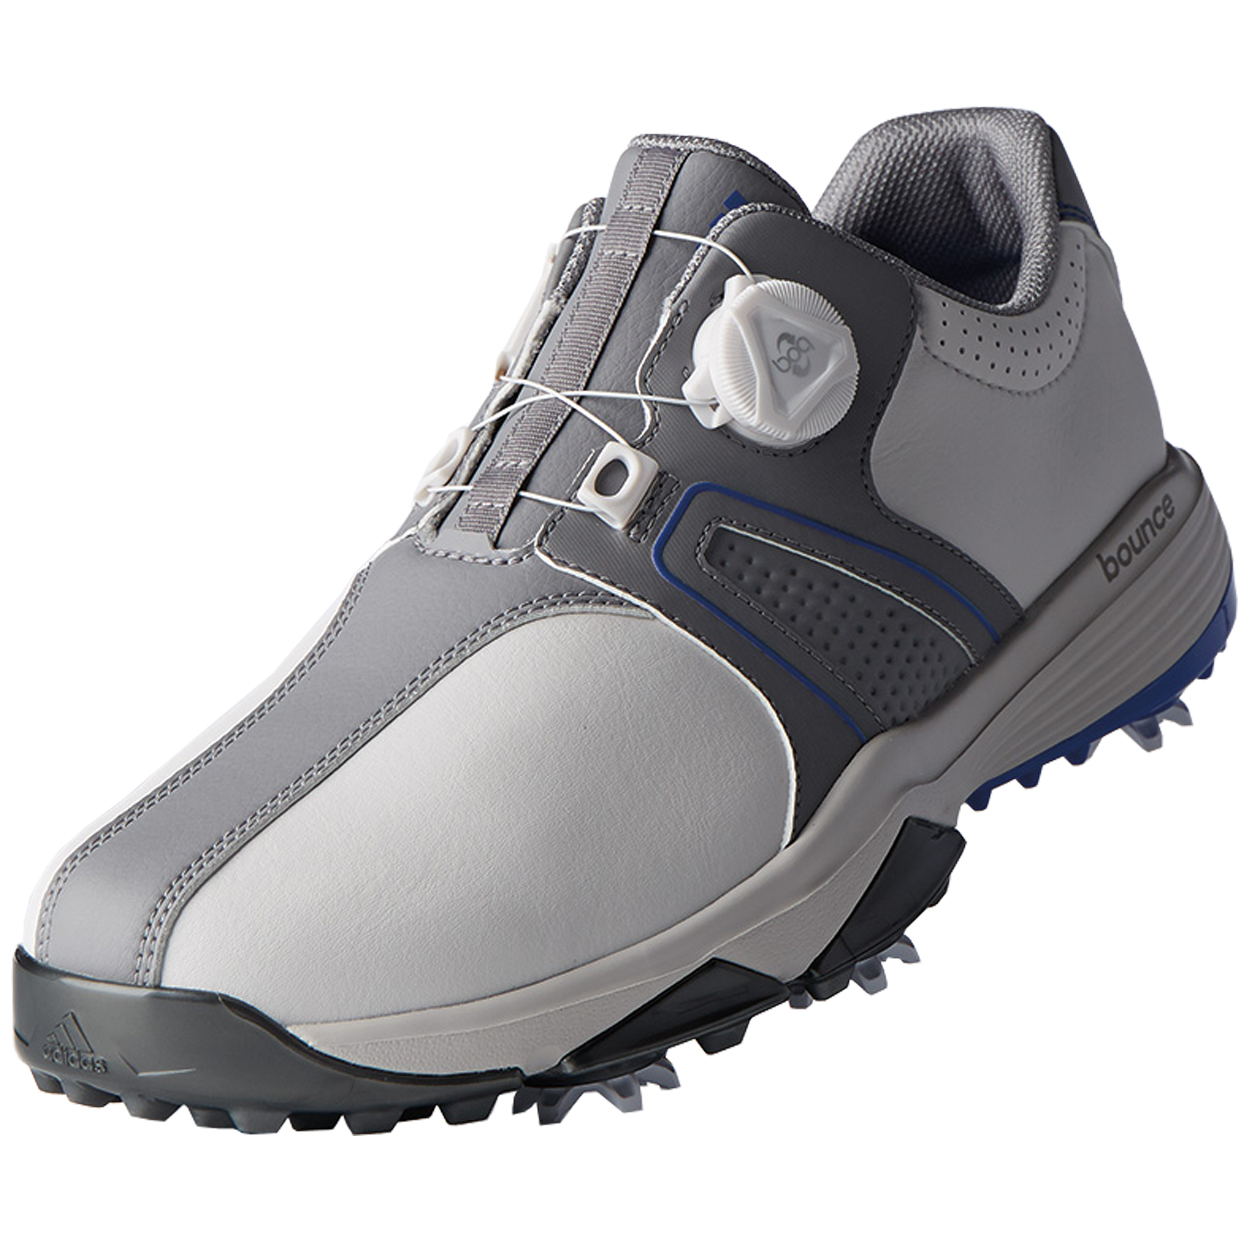 promo code d2d1c cf722 Adidas 360 Traxion Golf Shoes with Boa Closure